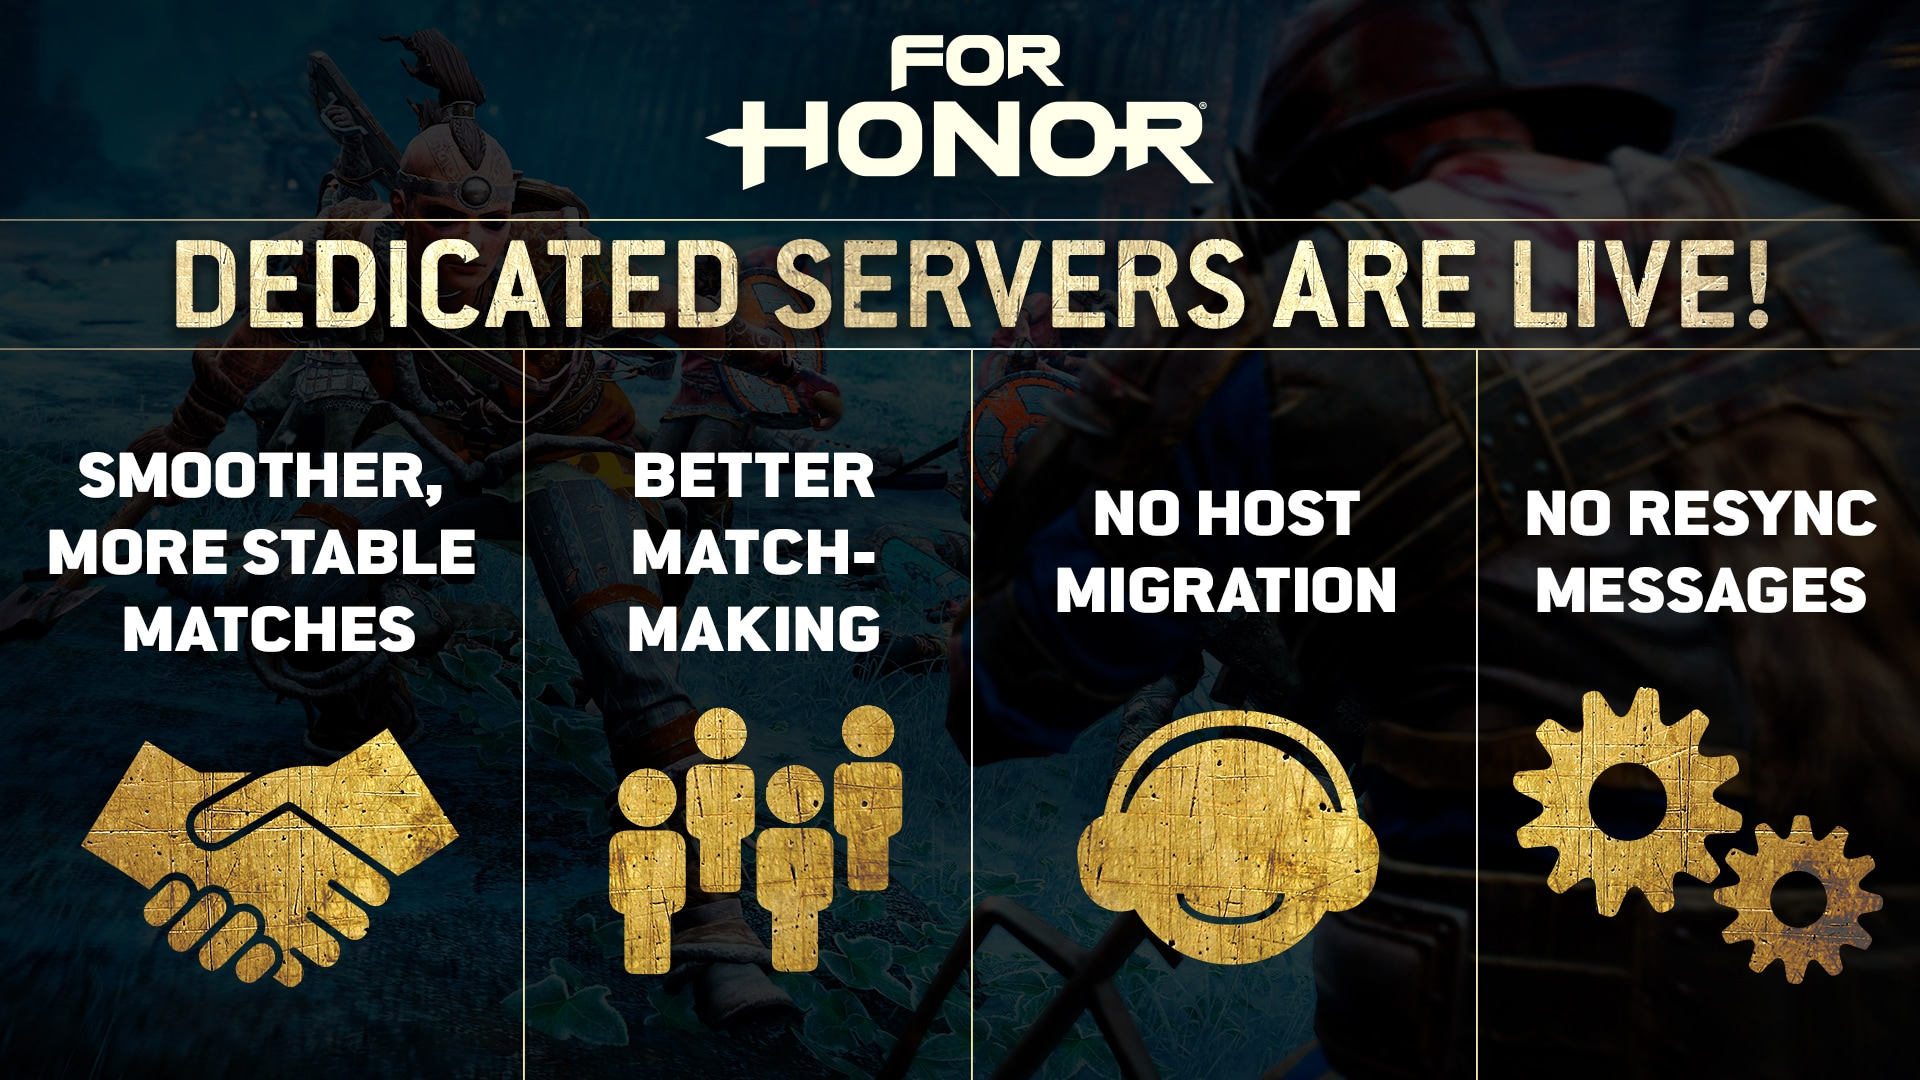 for honor nosteam